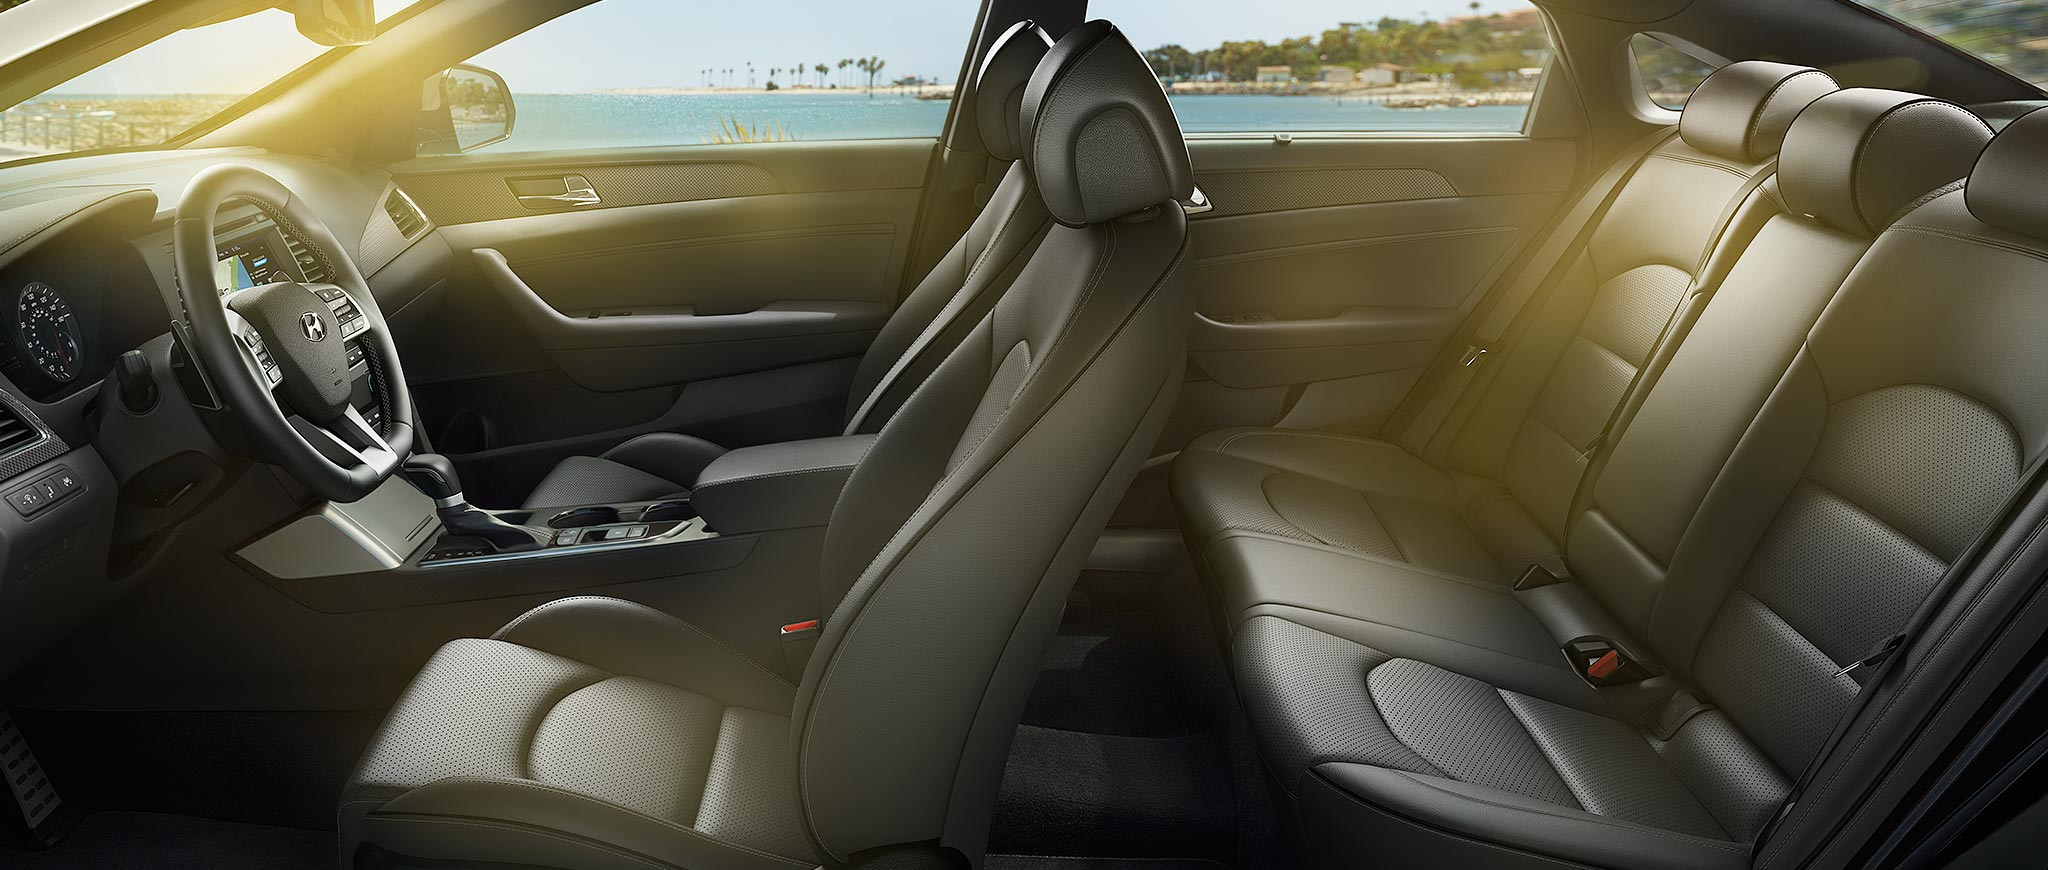 2017 Hyundai Sonata Interior Seating